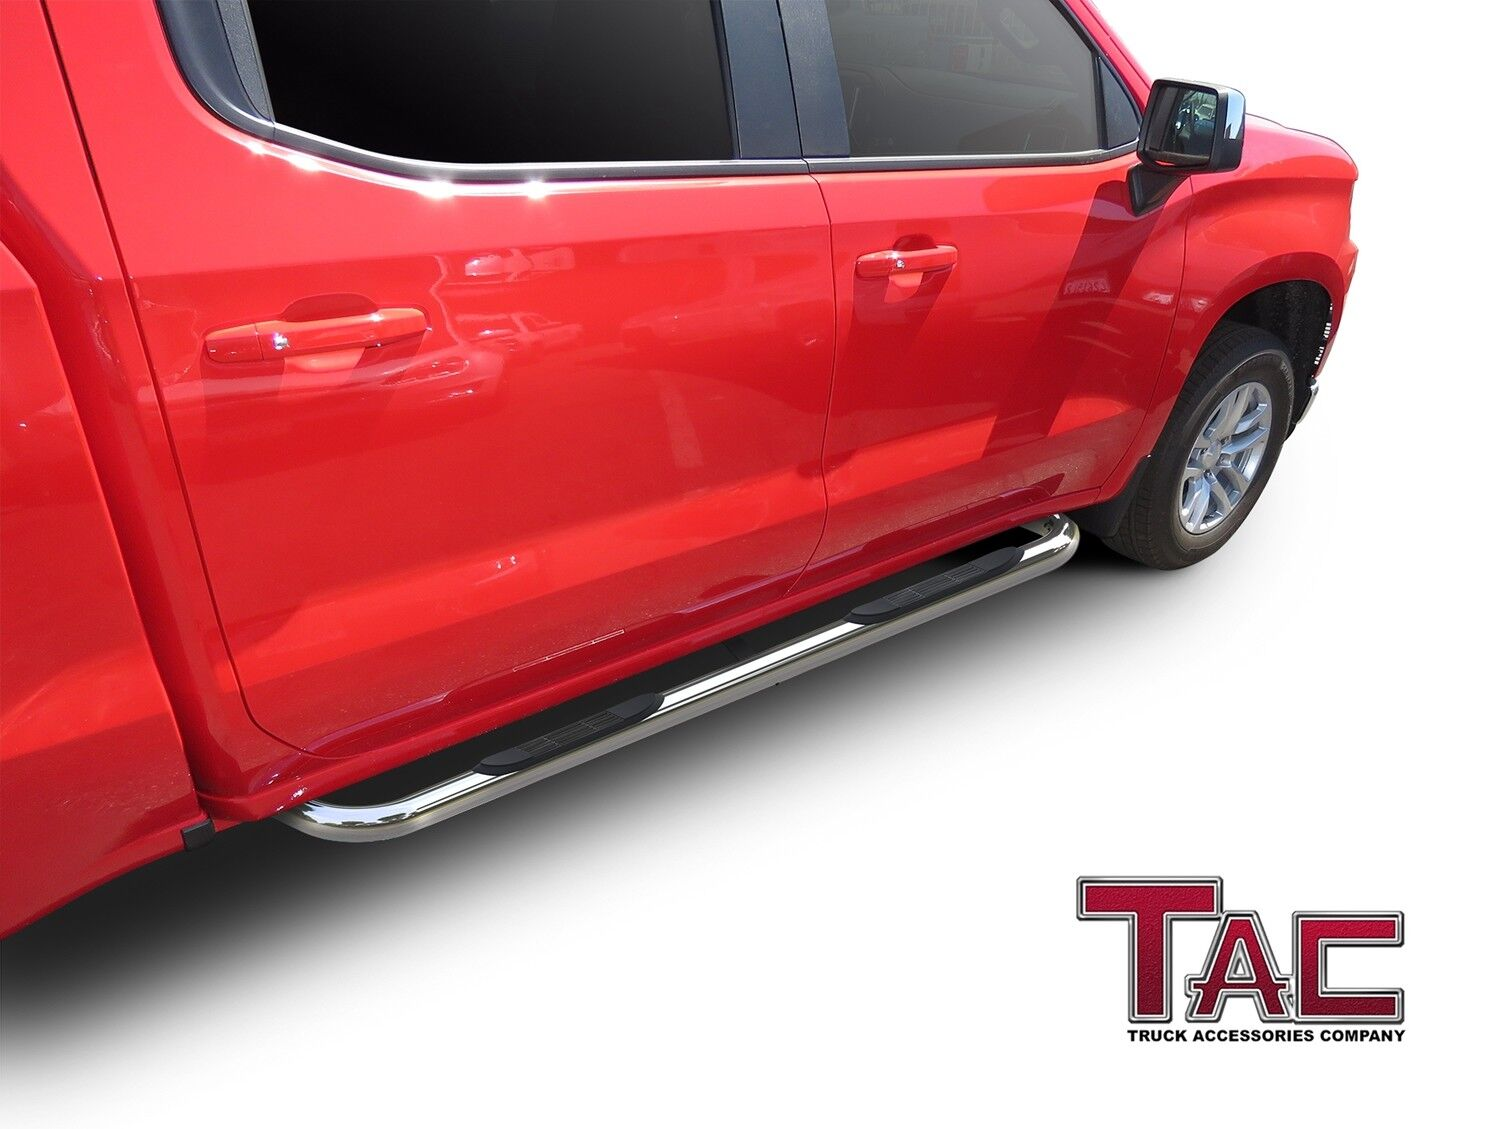 Chevy Silverado Side Steps >> Details About 3 Chrome Side Steps Nerf Bars For 2019 Chevy Silverado Gmc Sierra 1500 Crew Cab